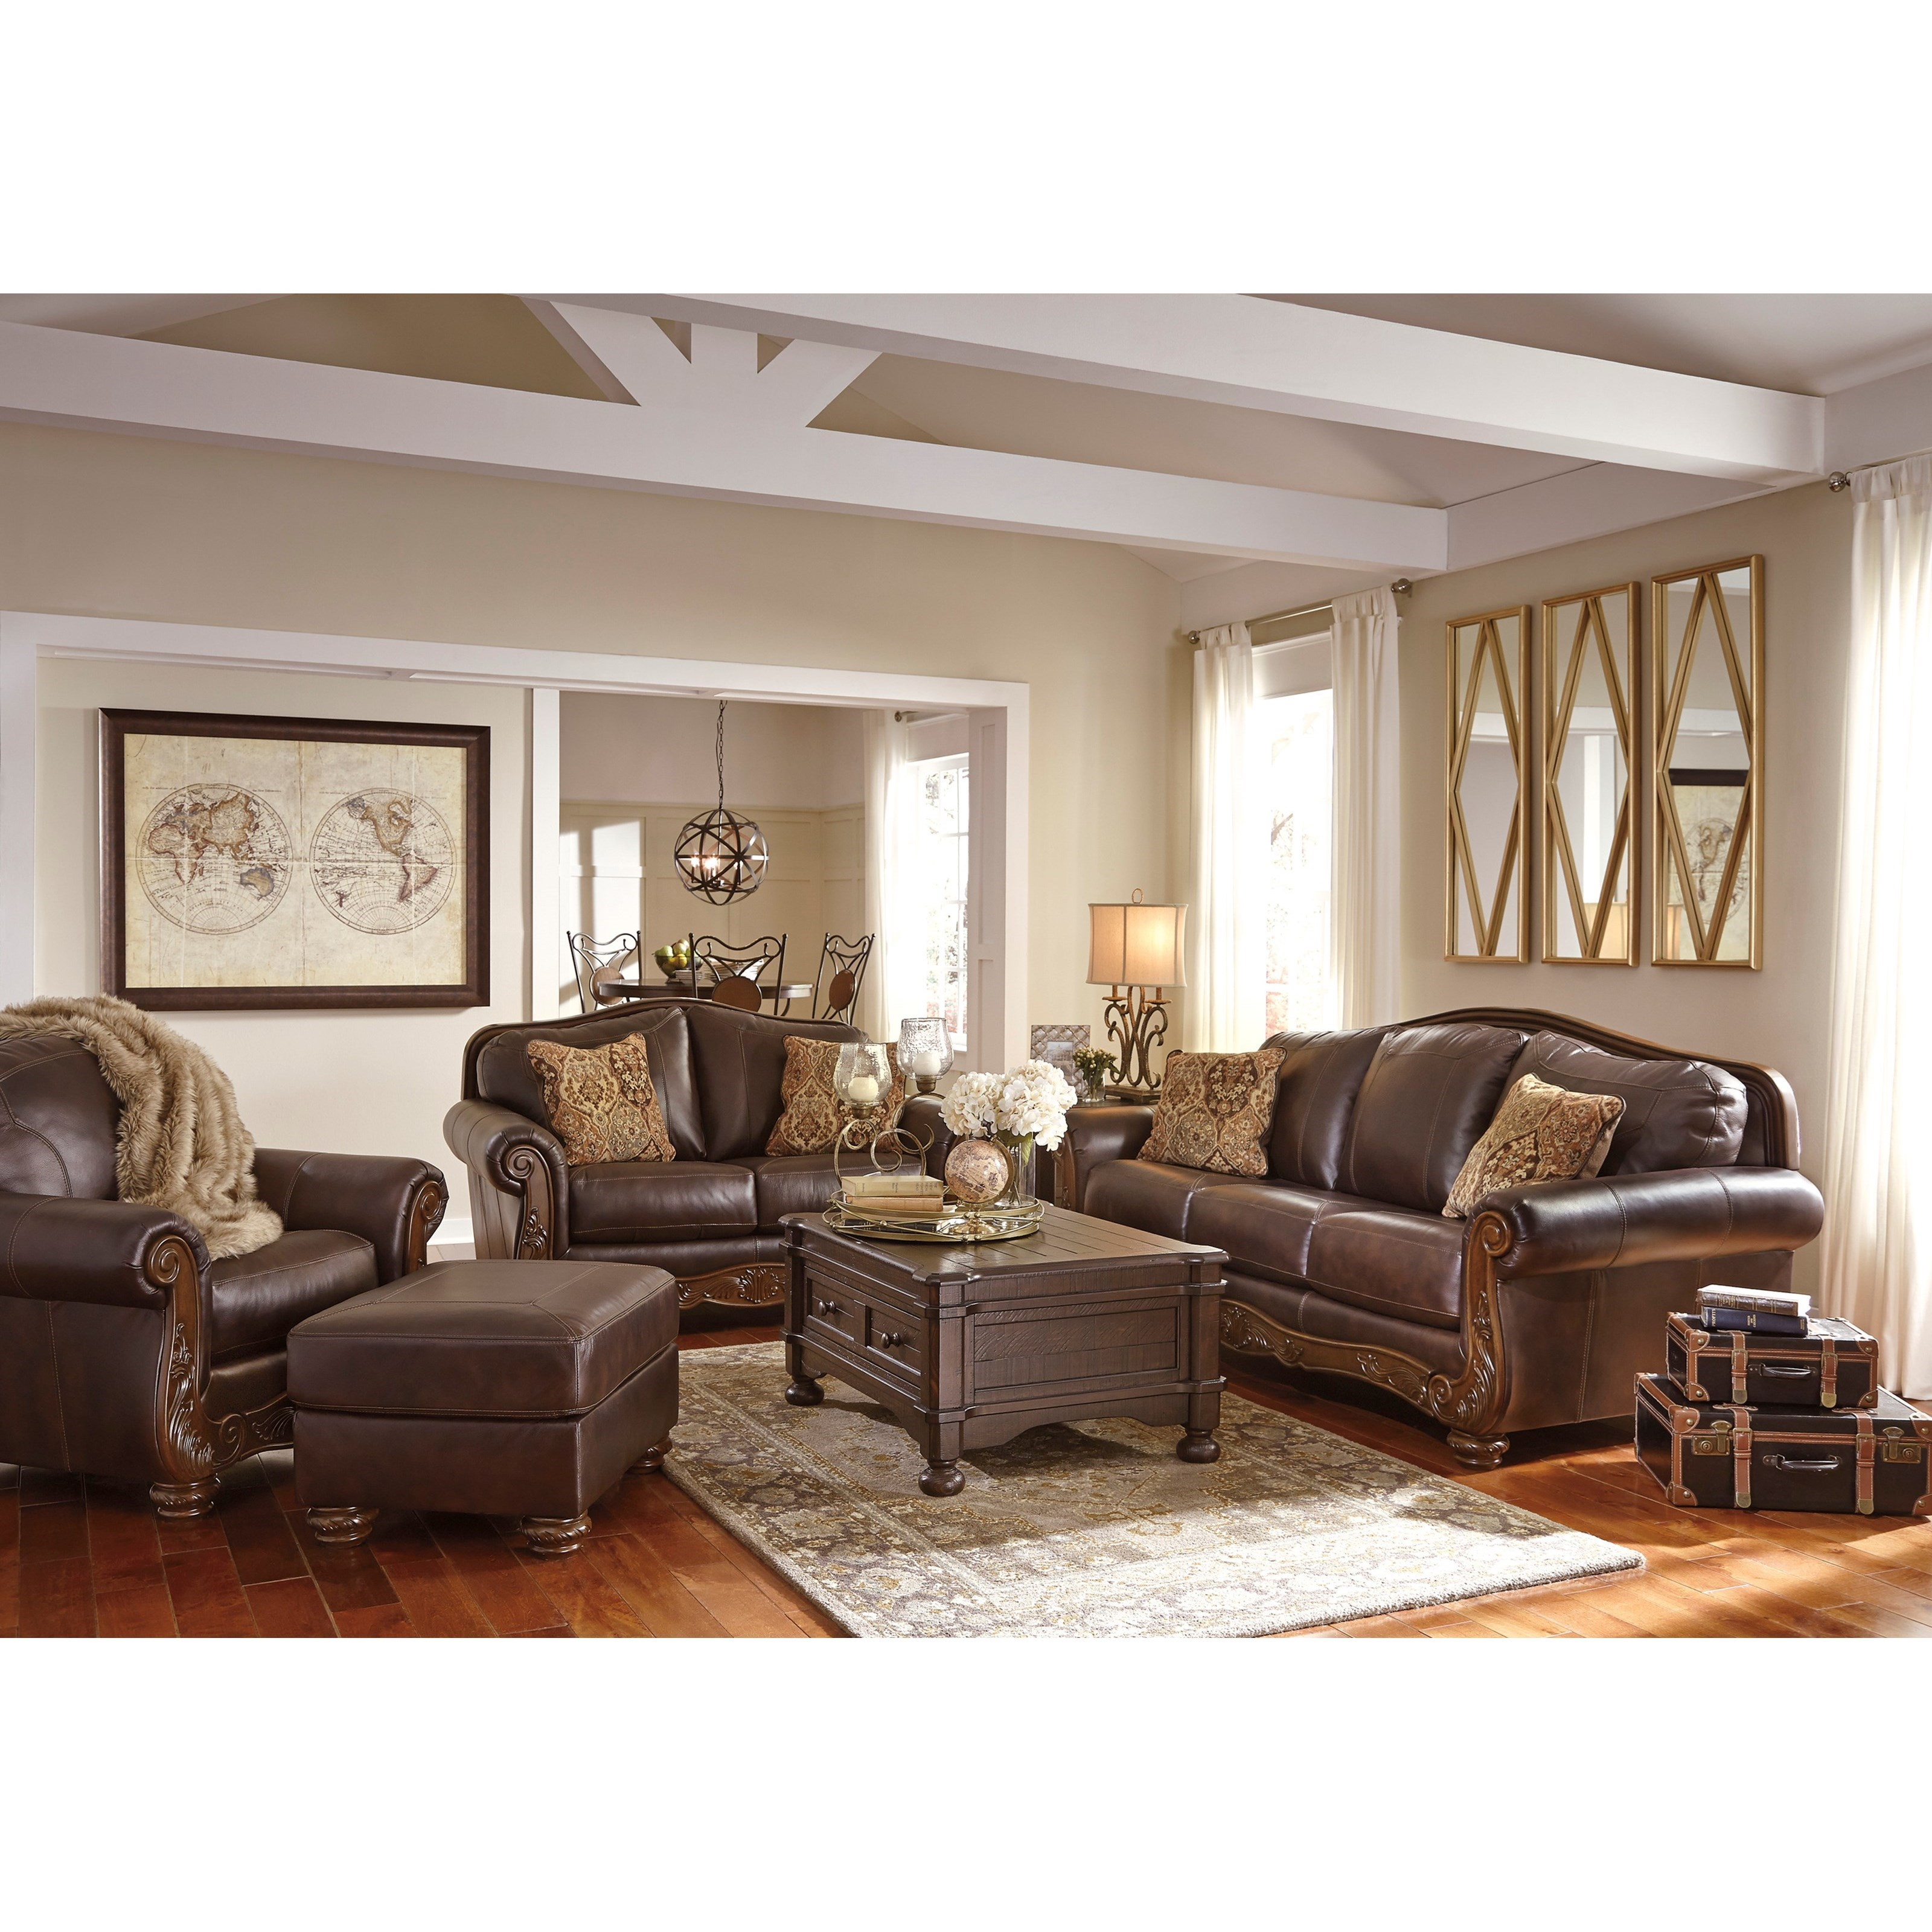 Signature Design by Ashley Mellwood Stationary Living Room Group - Item Number: 64605 Living Room Group 2